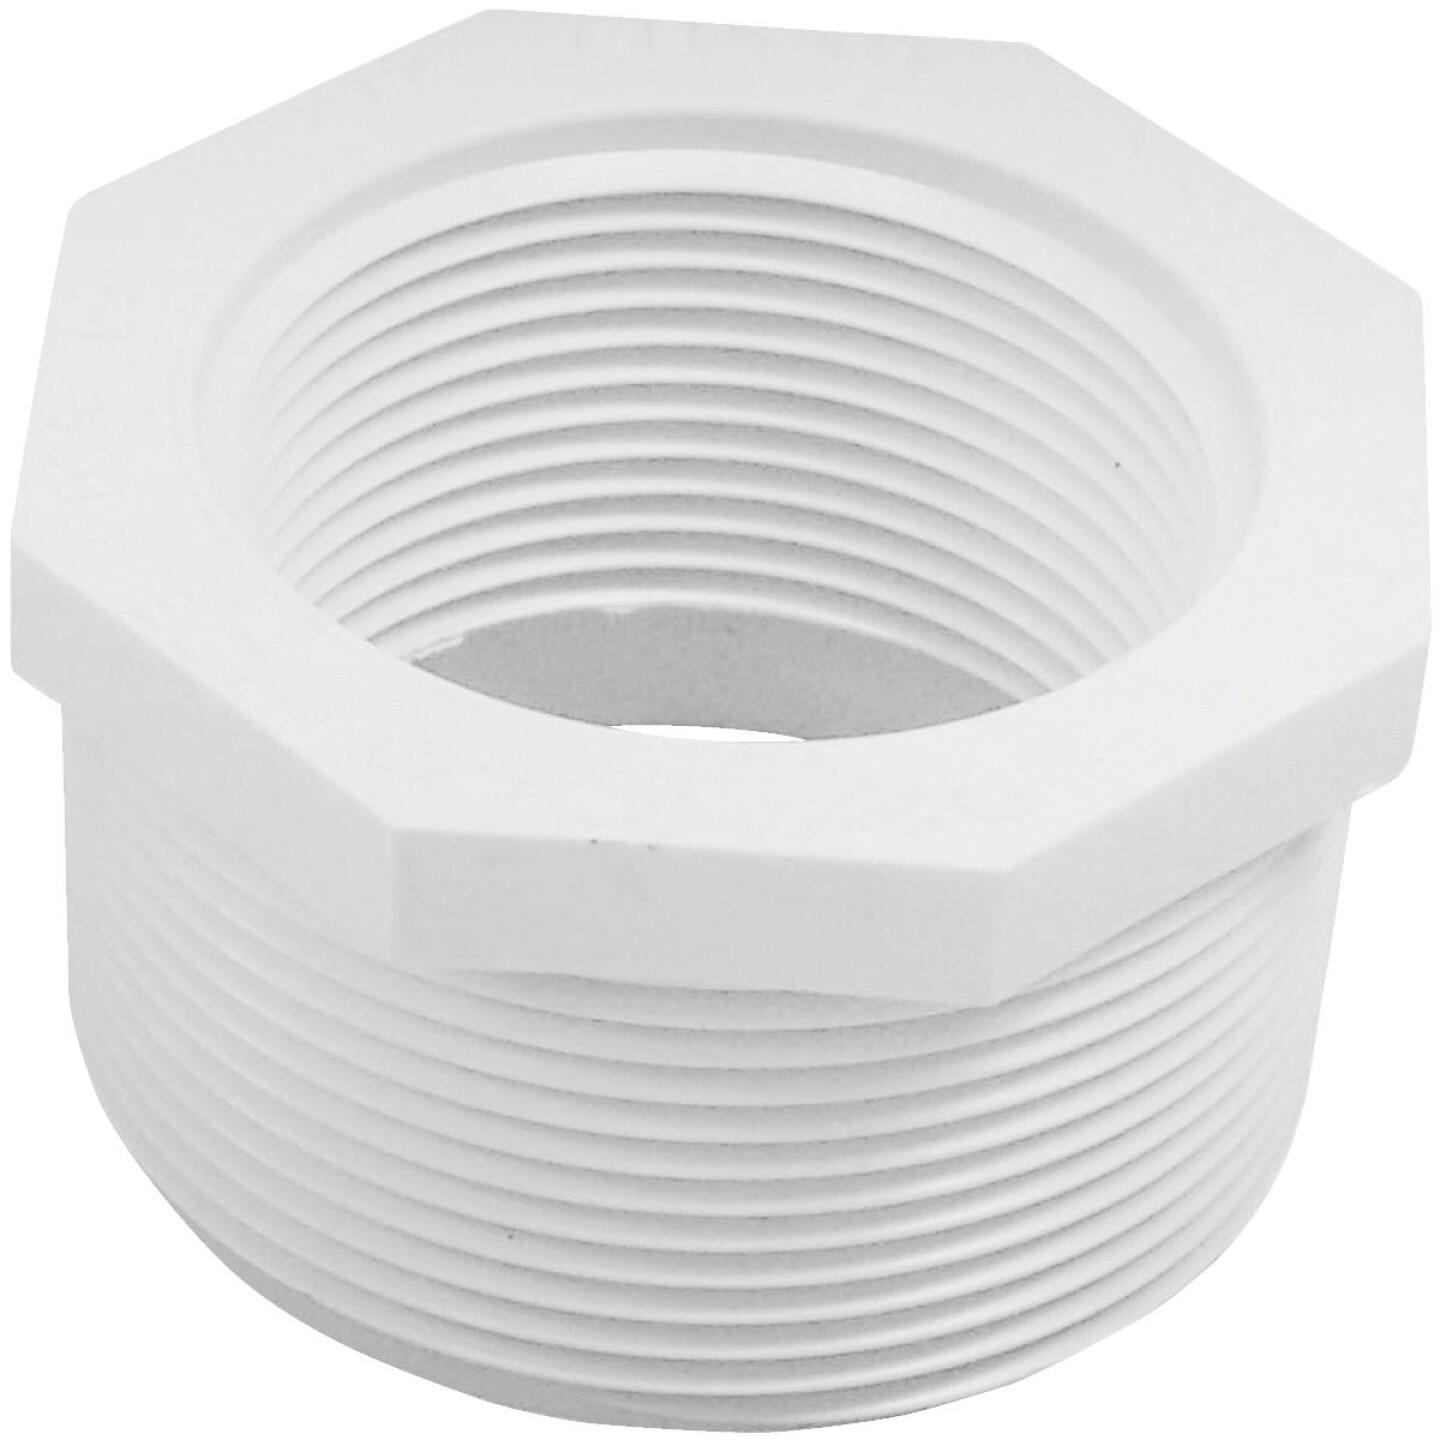 Charlotte Pipe 2 In. MPT x 1-1/2 In. FPT Schedule 40 PVC Bushing Image 1